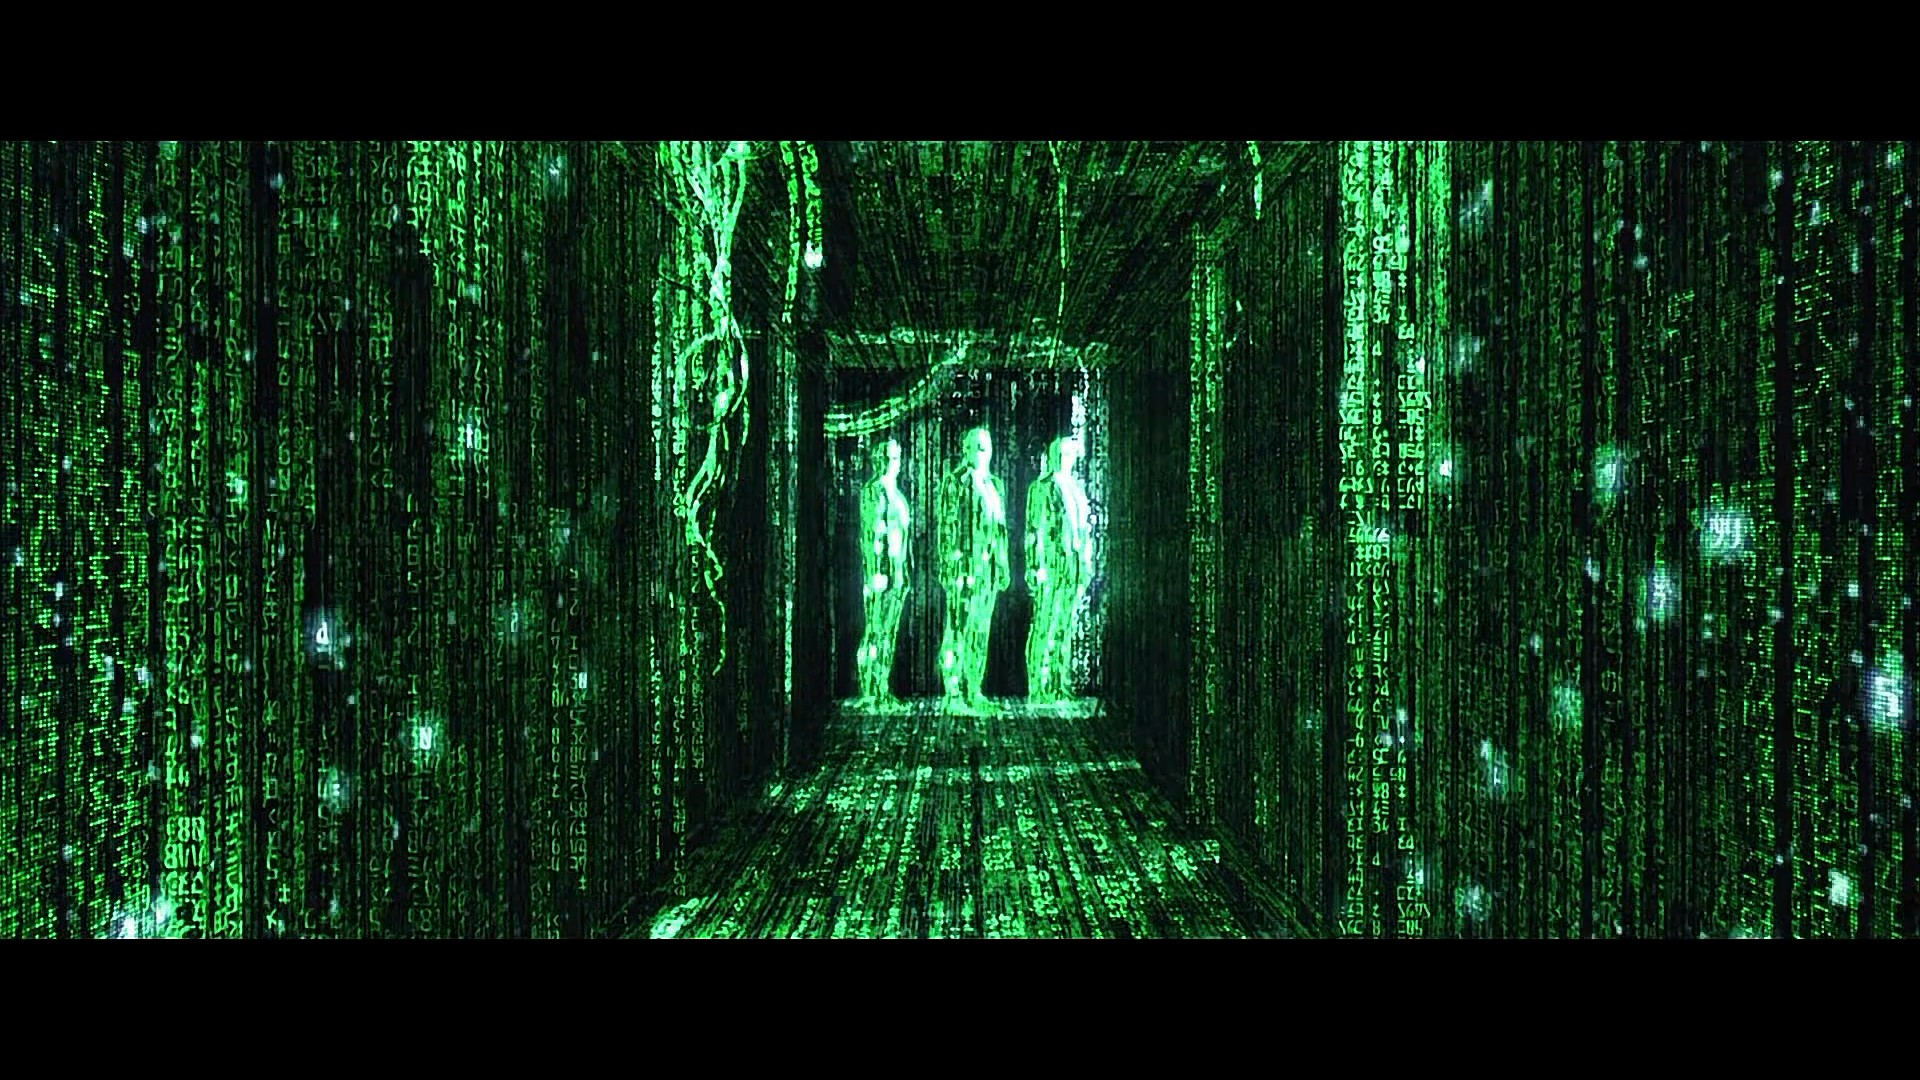 Matrix background download free amazing backgrounds for desktop mobile laptop in any - Matrix wallpaper download free ...